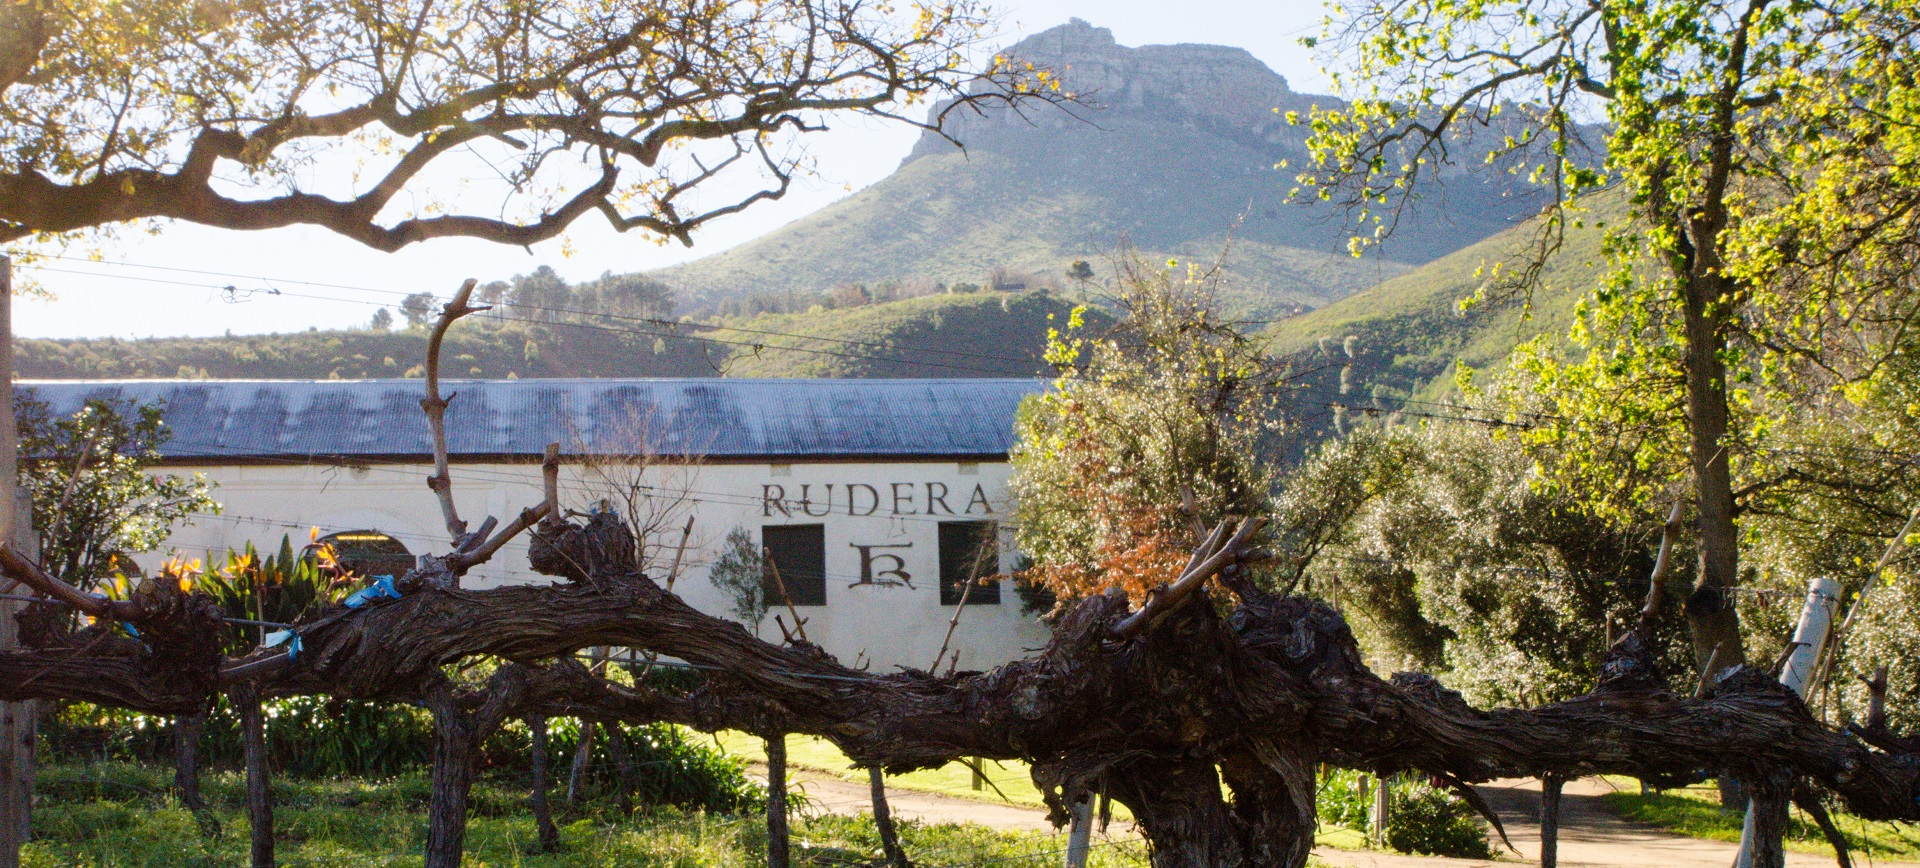 Rudera Wines - is situated in Jonkerhoek Valley, Stellenbosch